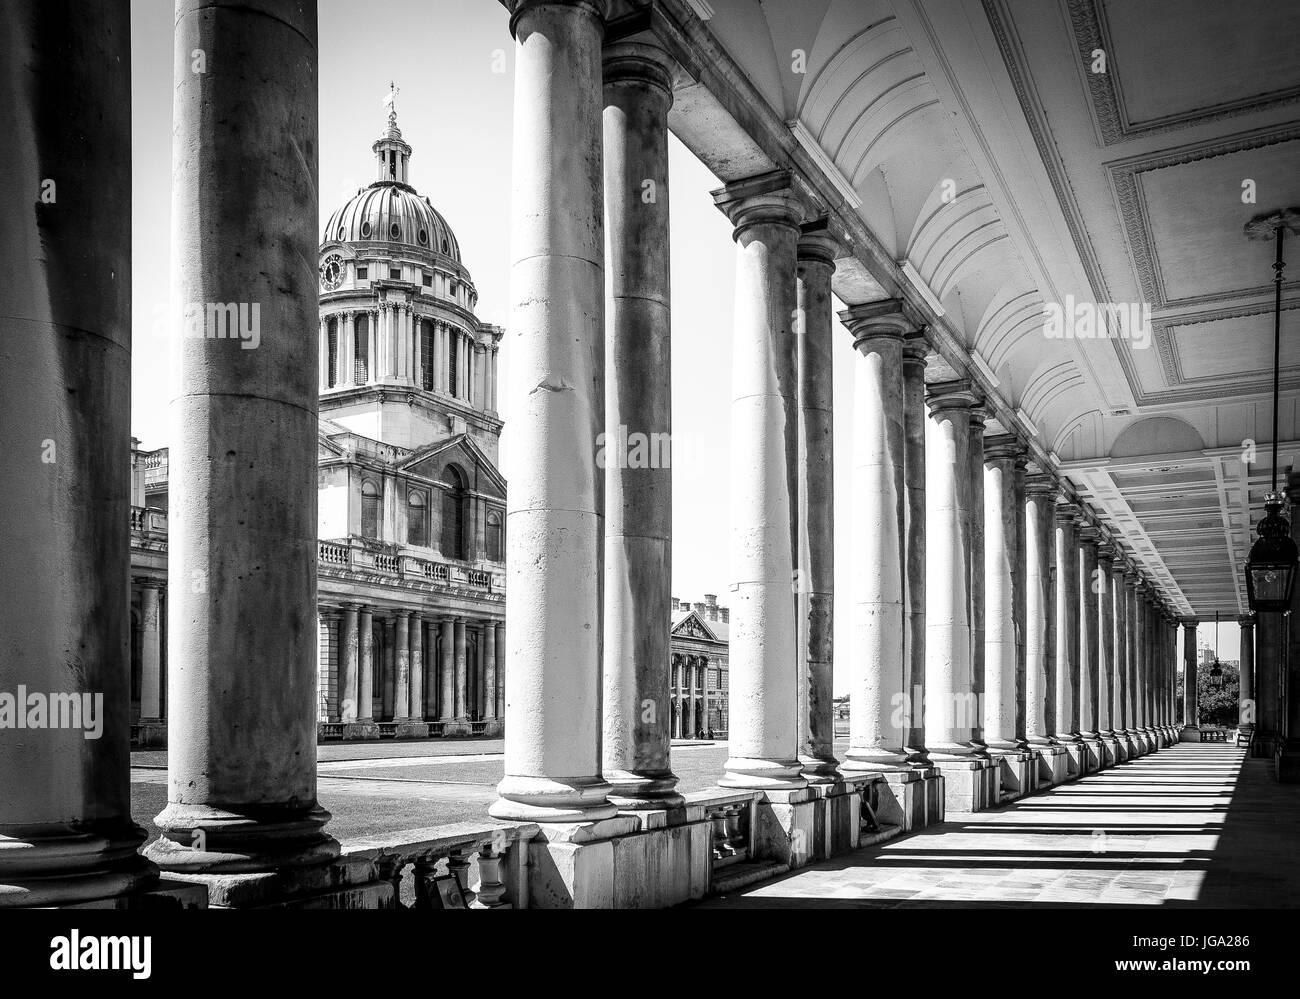 Greenwich Naval College - Stock Image